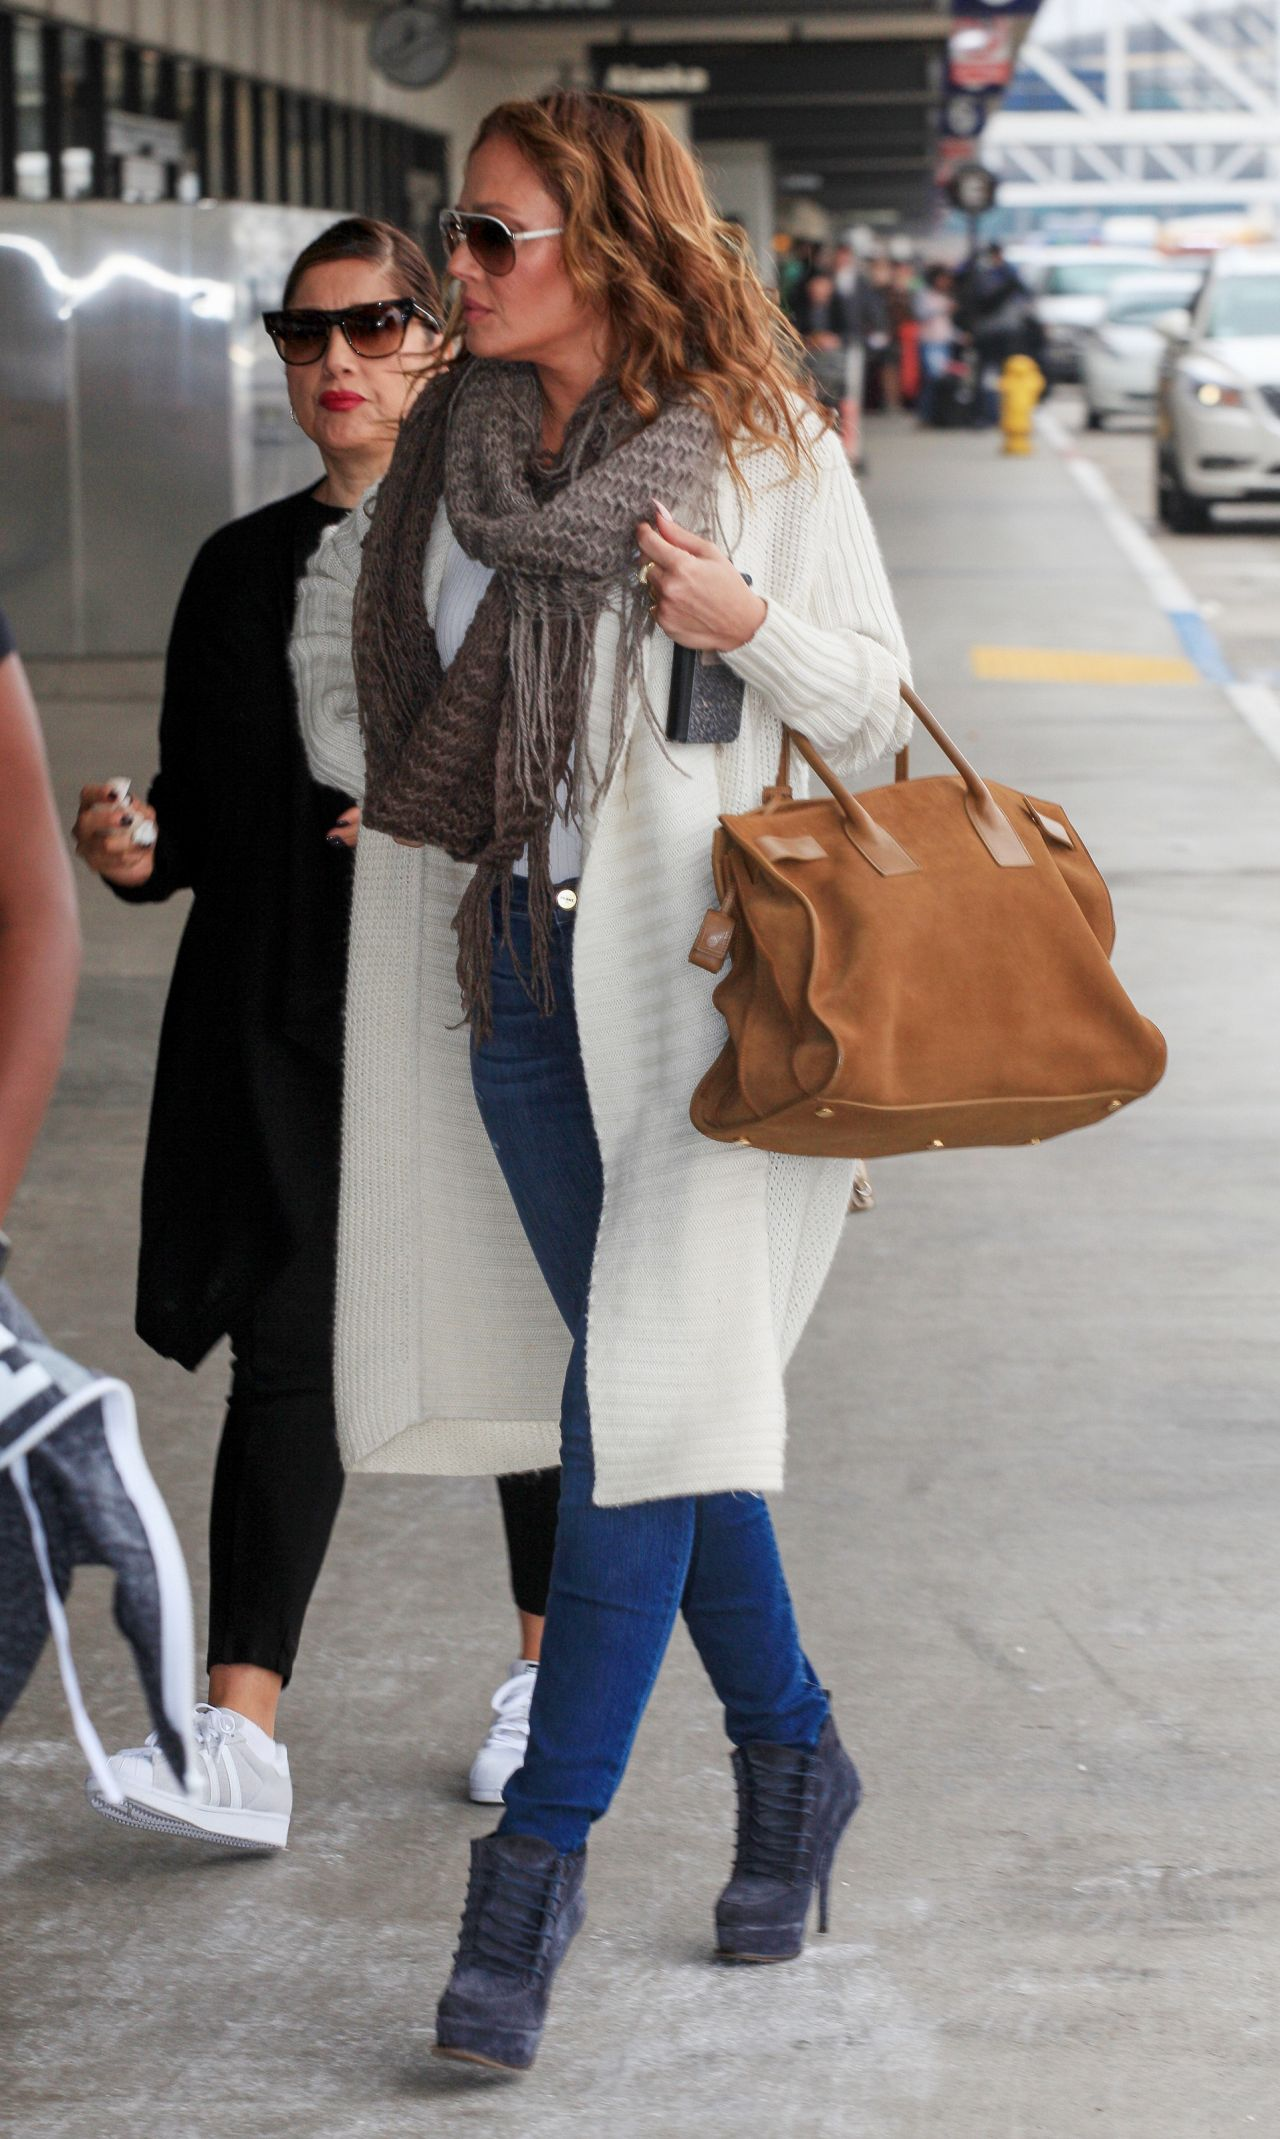 Leah Remini Travel Outfit At Lax Airport In Los Angeles